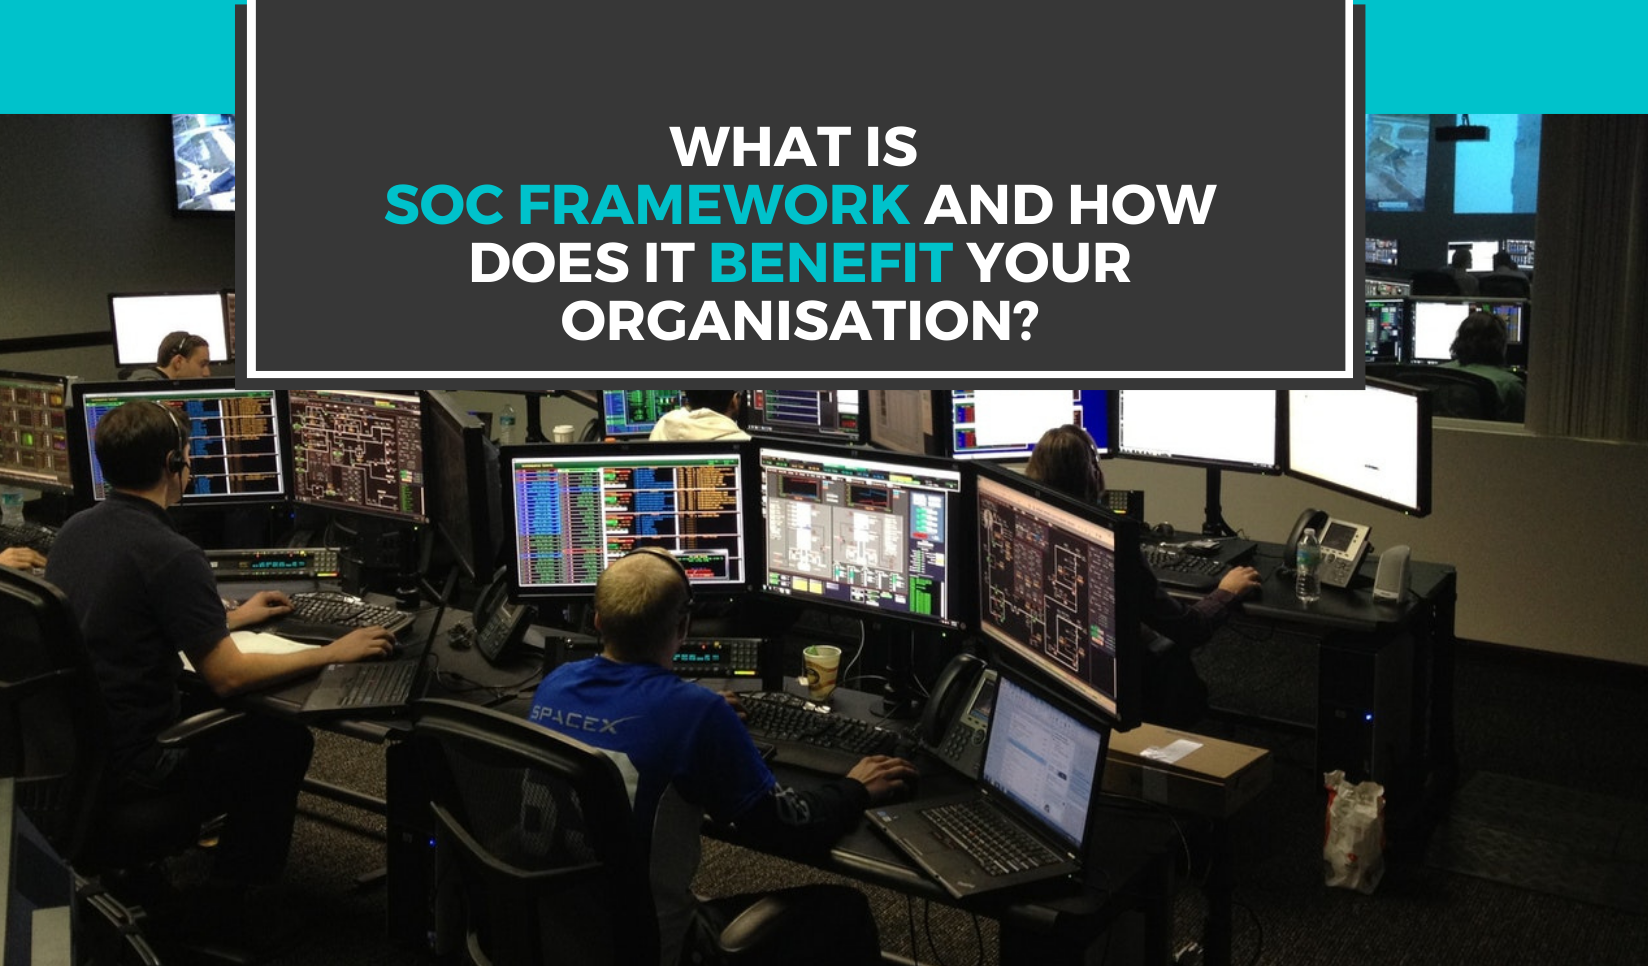 SOC framework – what is it and how does it benefit your organisation?